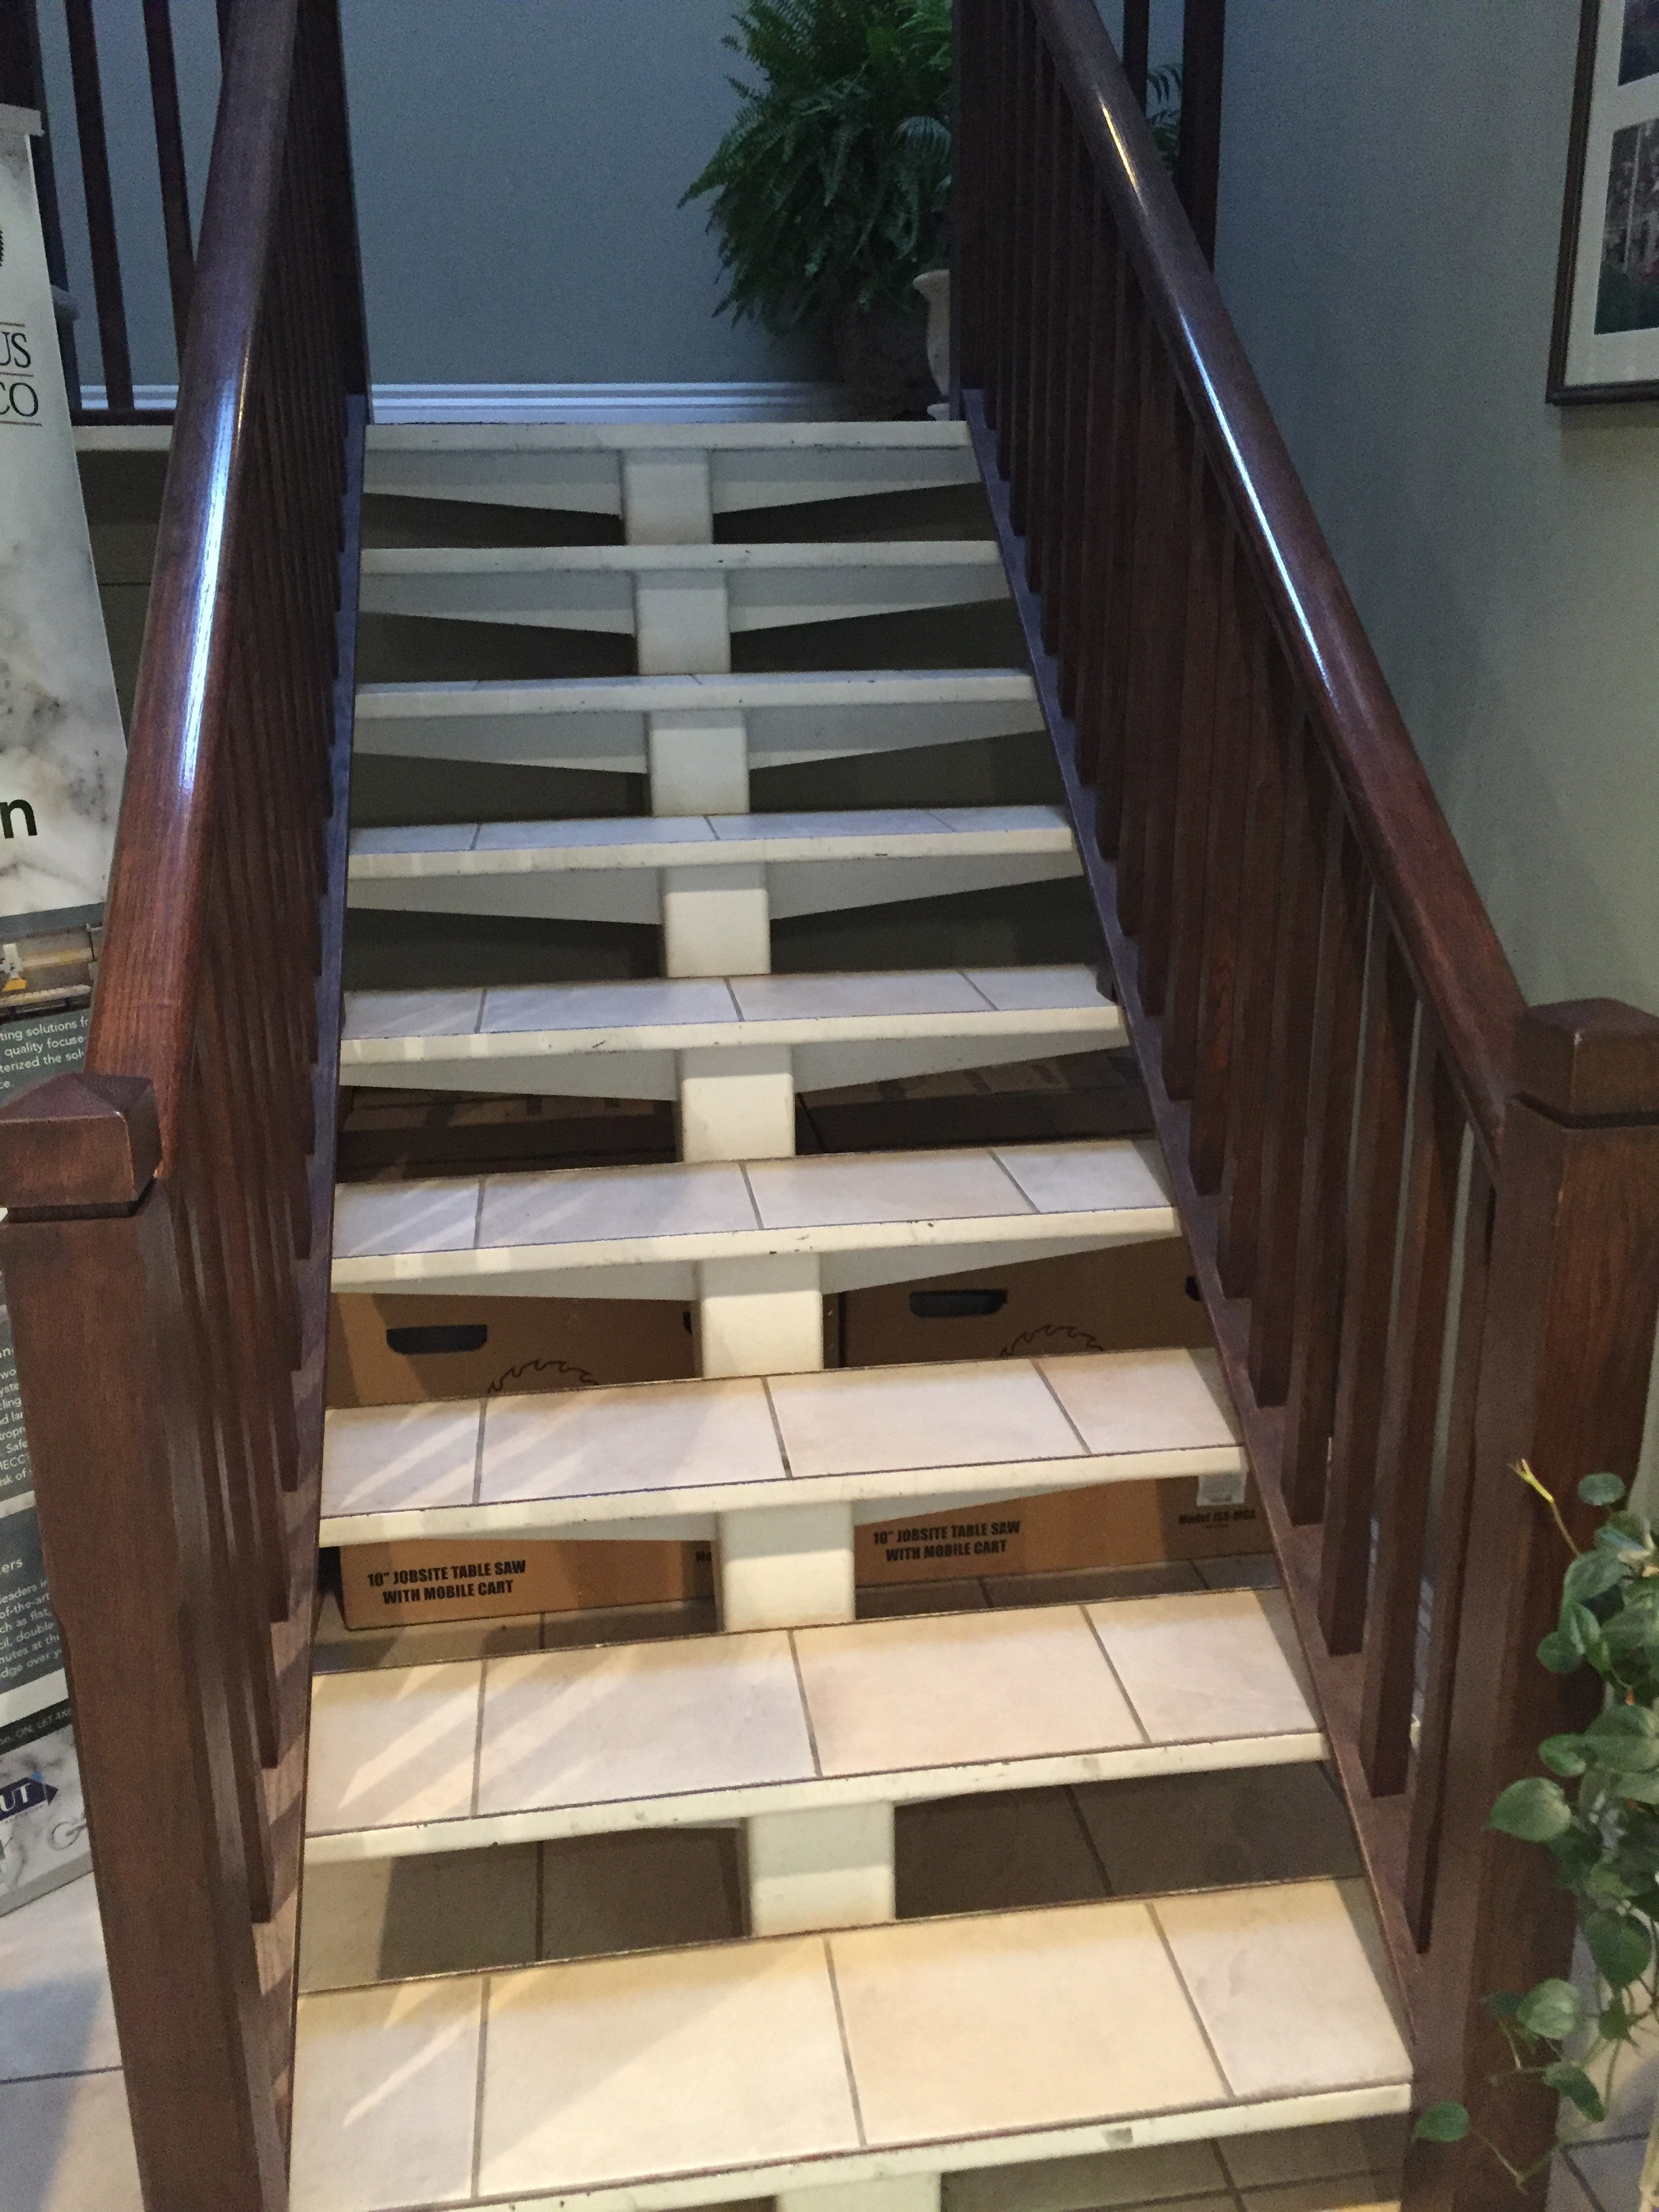 hardwood flooring outlet toronto of new stairs and railing in ellesmere road toronto canada staircase within our gallery